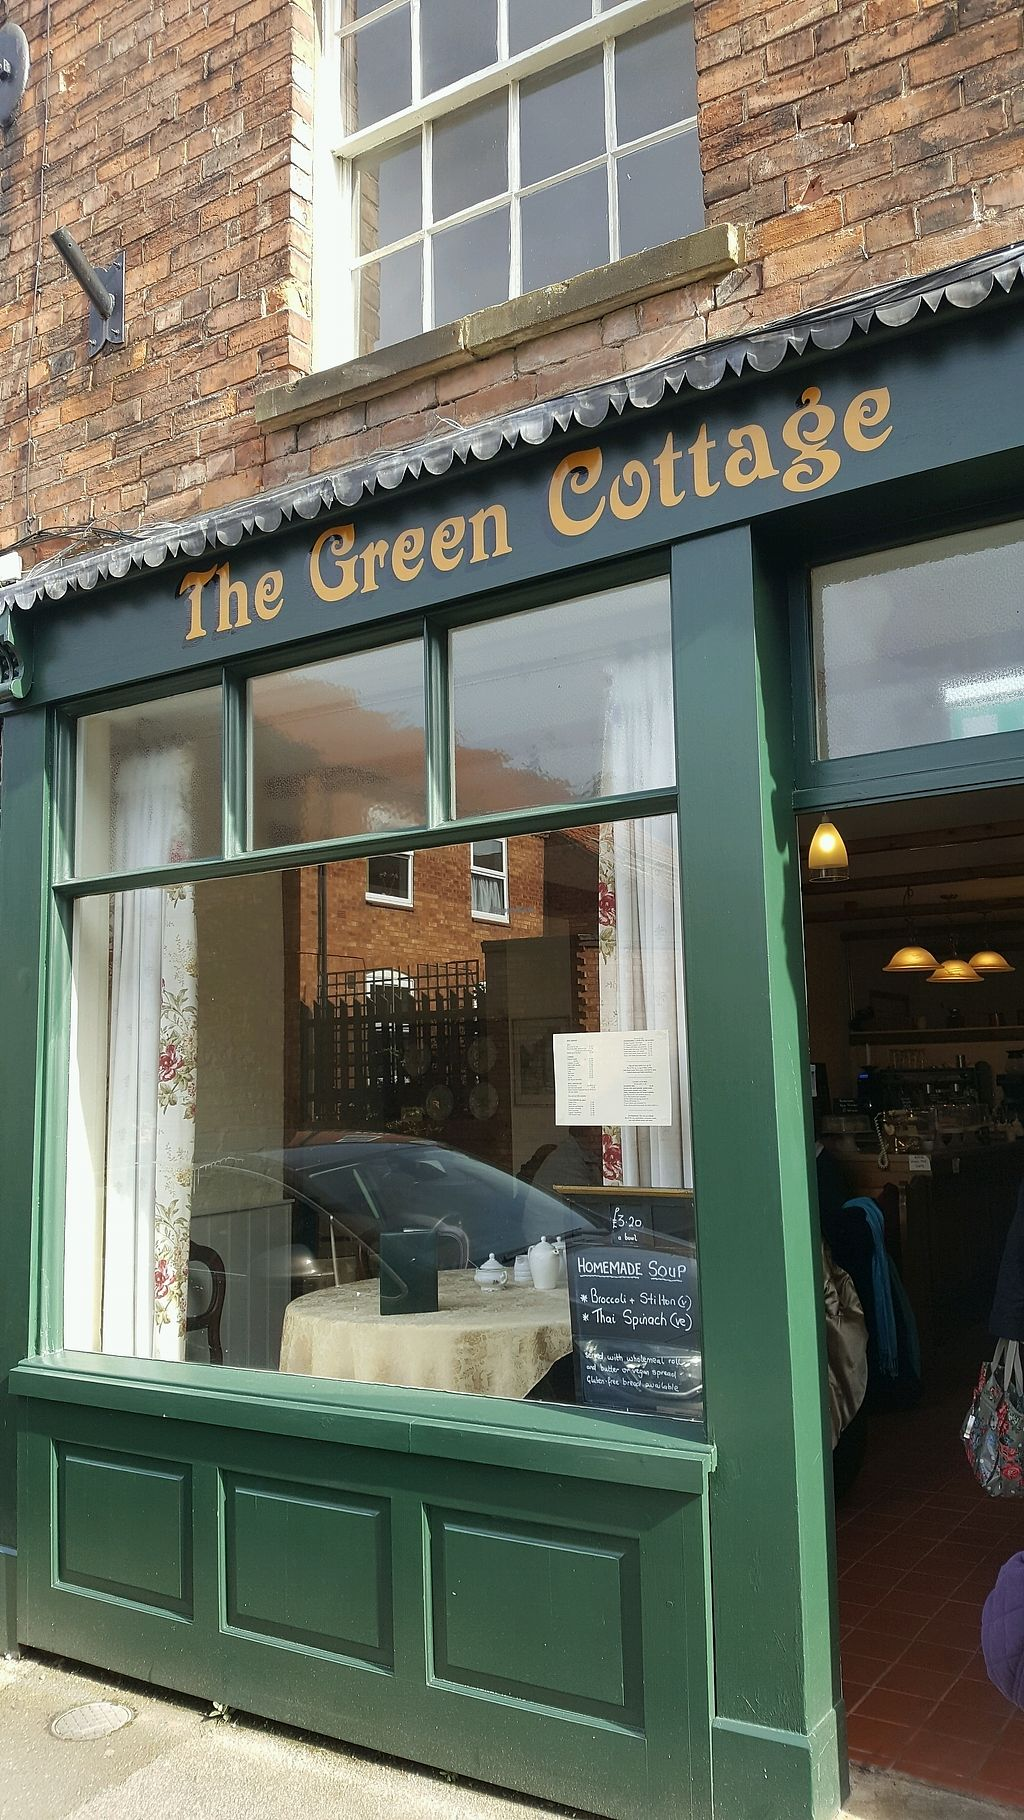 """Photo of The Green Cottage  by <a href=""""/members/profile/KarlAyers"""">KarlAyers</a> <br/>The Green Cottage on Vickers Lane <br/> March 14, 2018  - <a href='/contact/abuse/image/110024/370555'>Report</a>"""